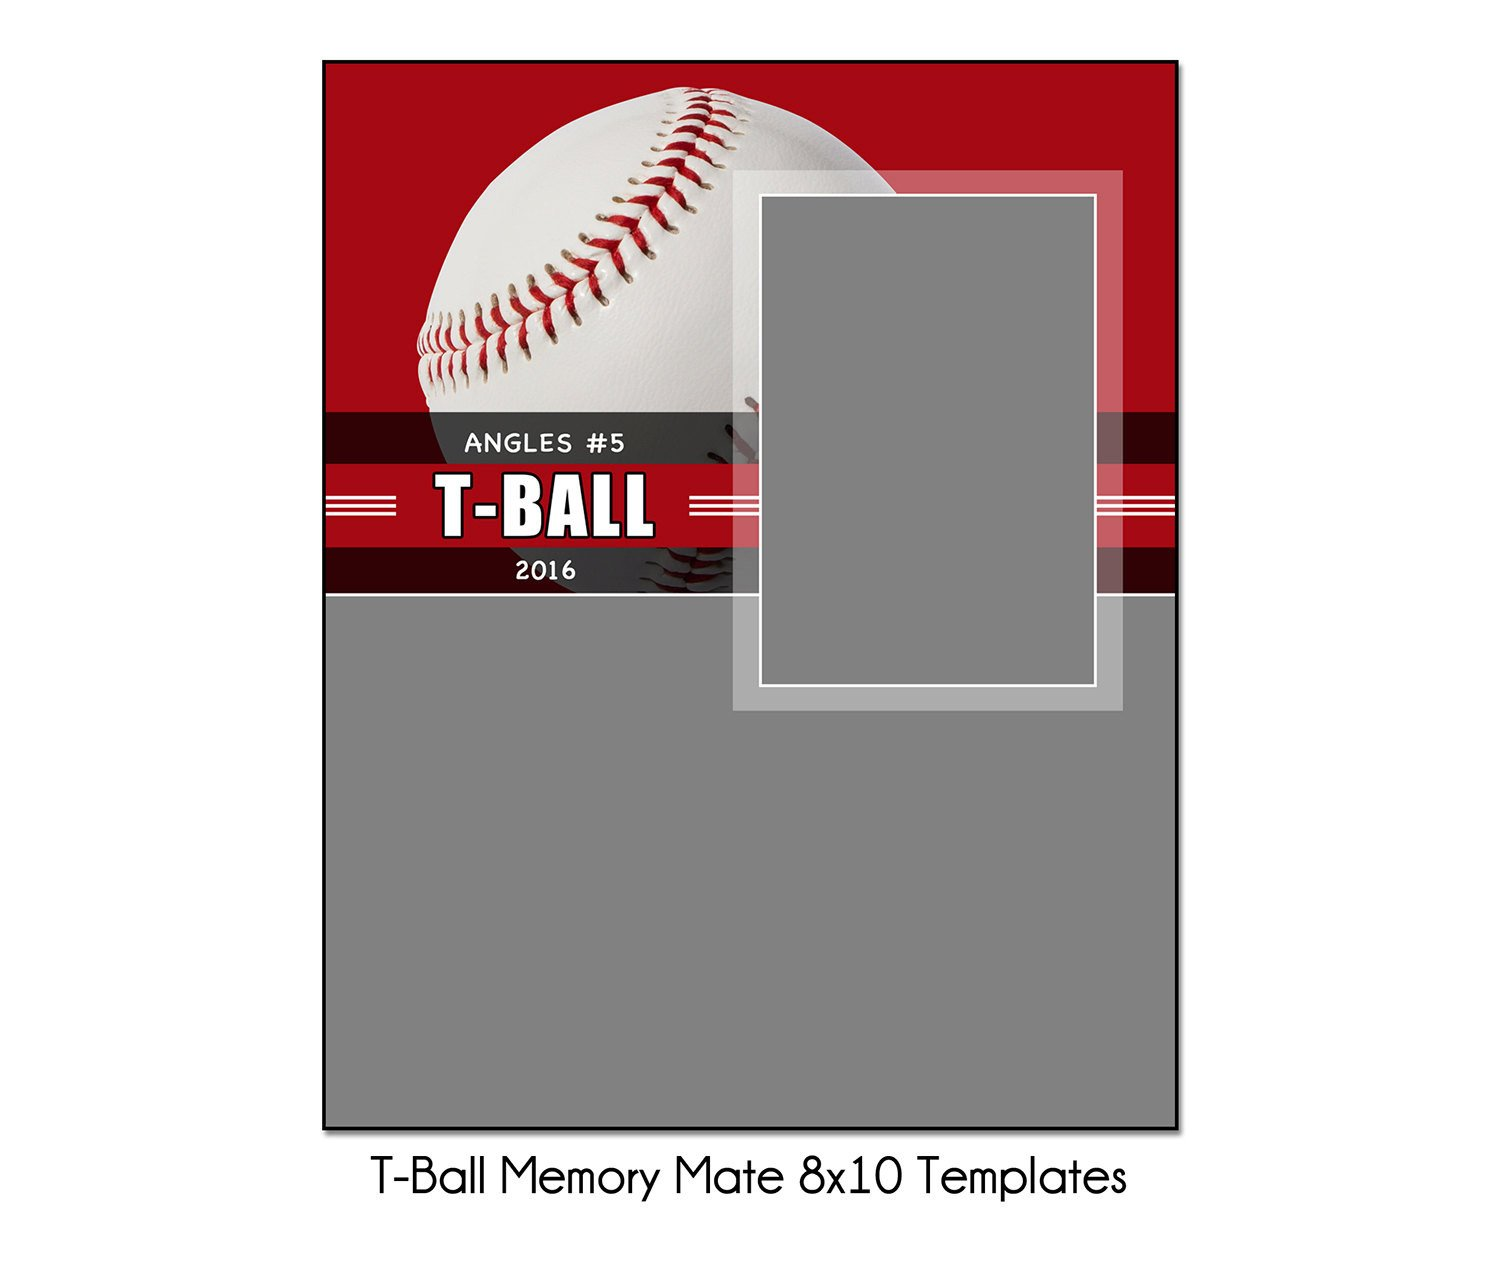 Softball Memory Mate Template T Ball Mm1 8x10 Memory Mate Sports Template Digital